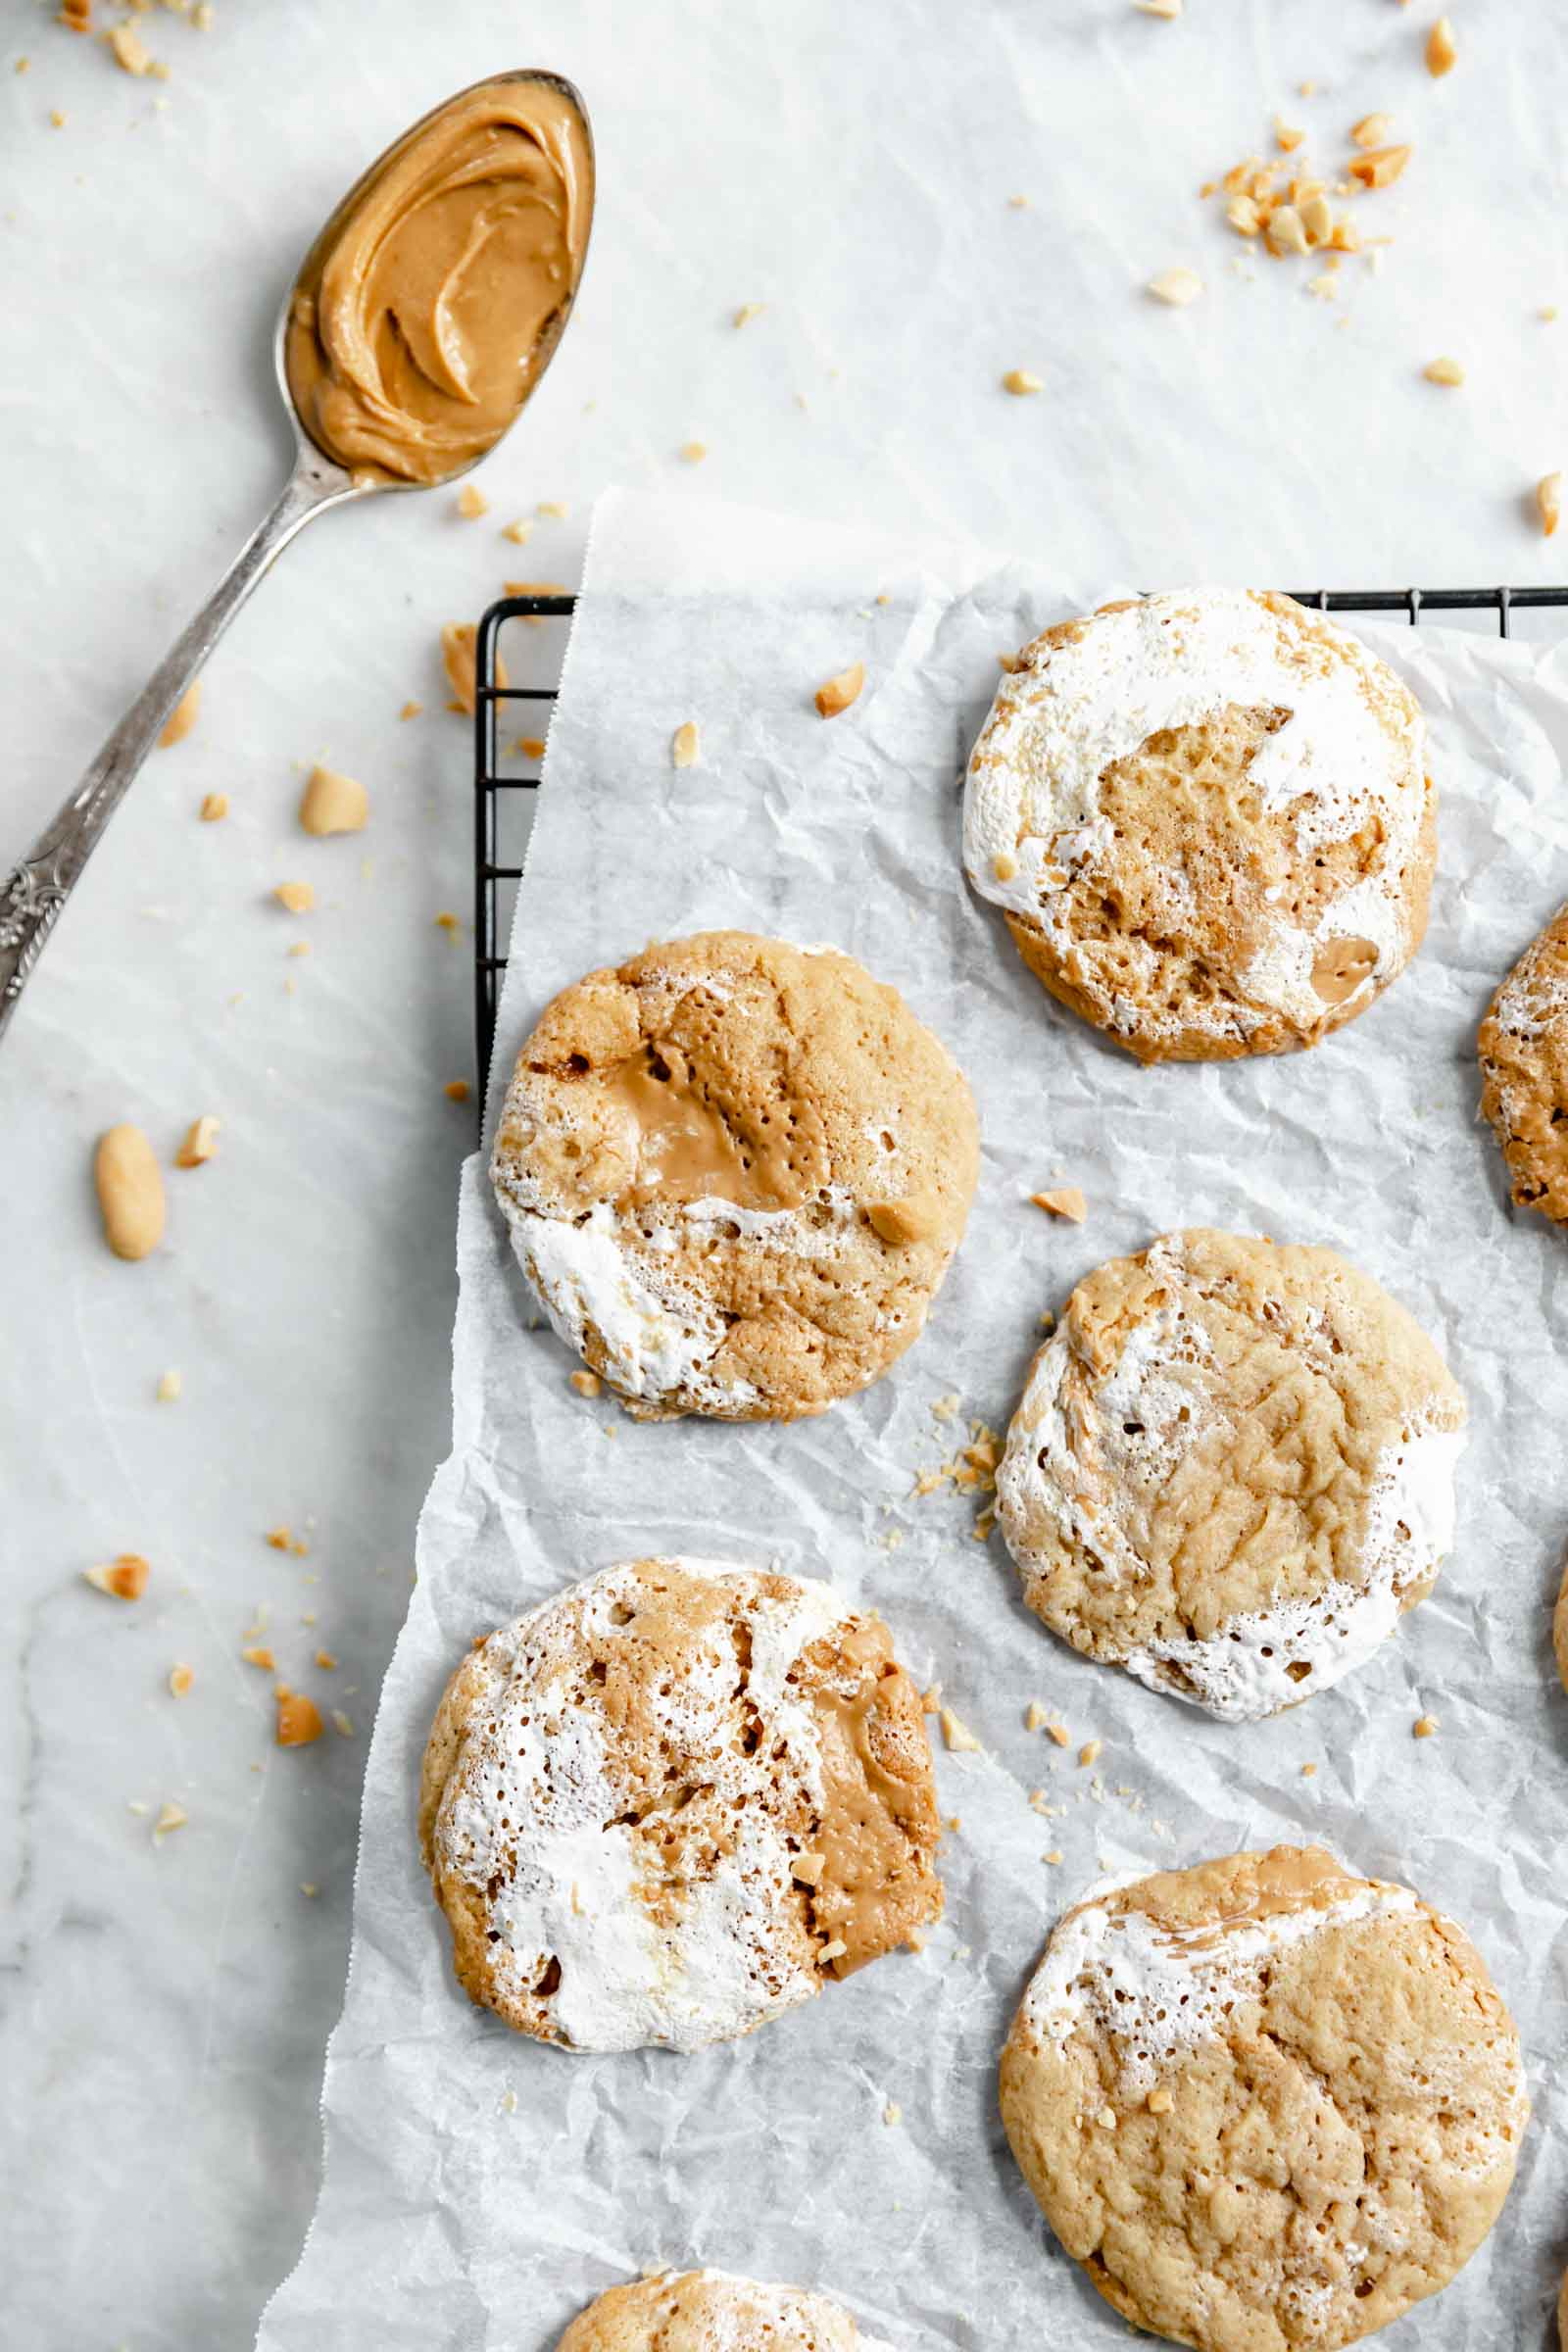 chewy homemade fluffernutter cookies on a cooling rack